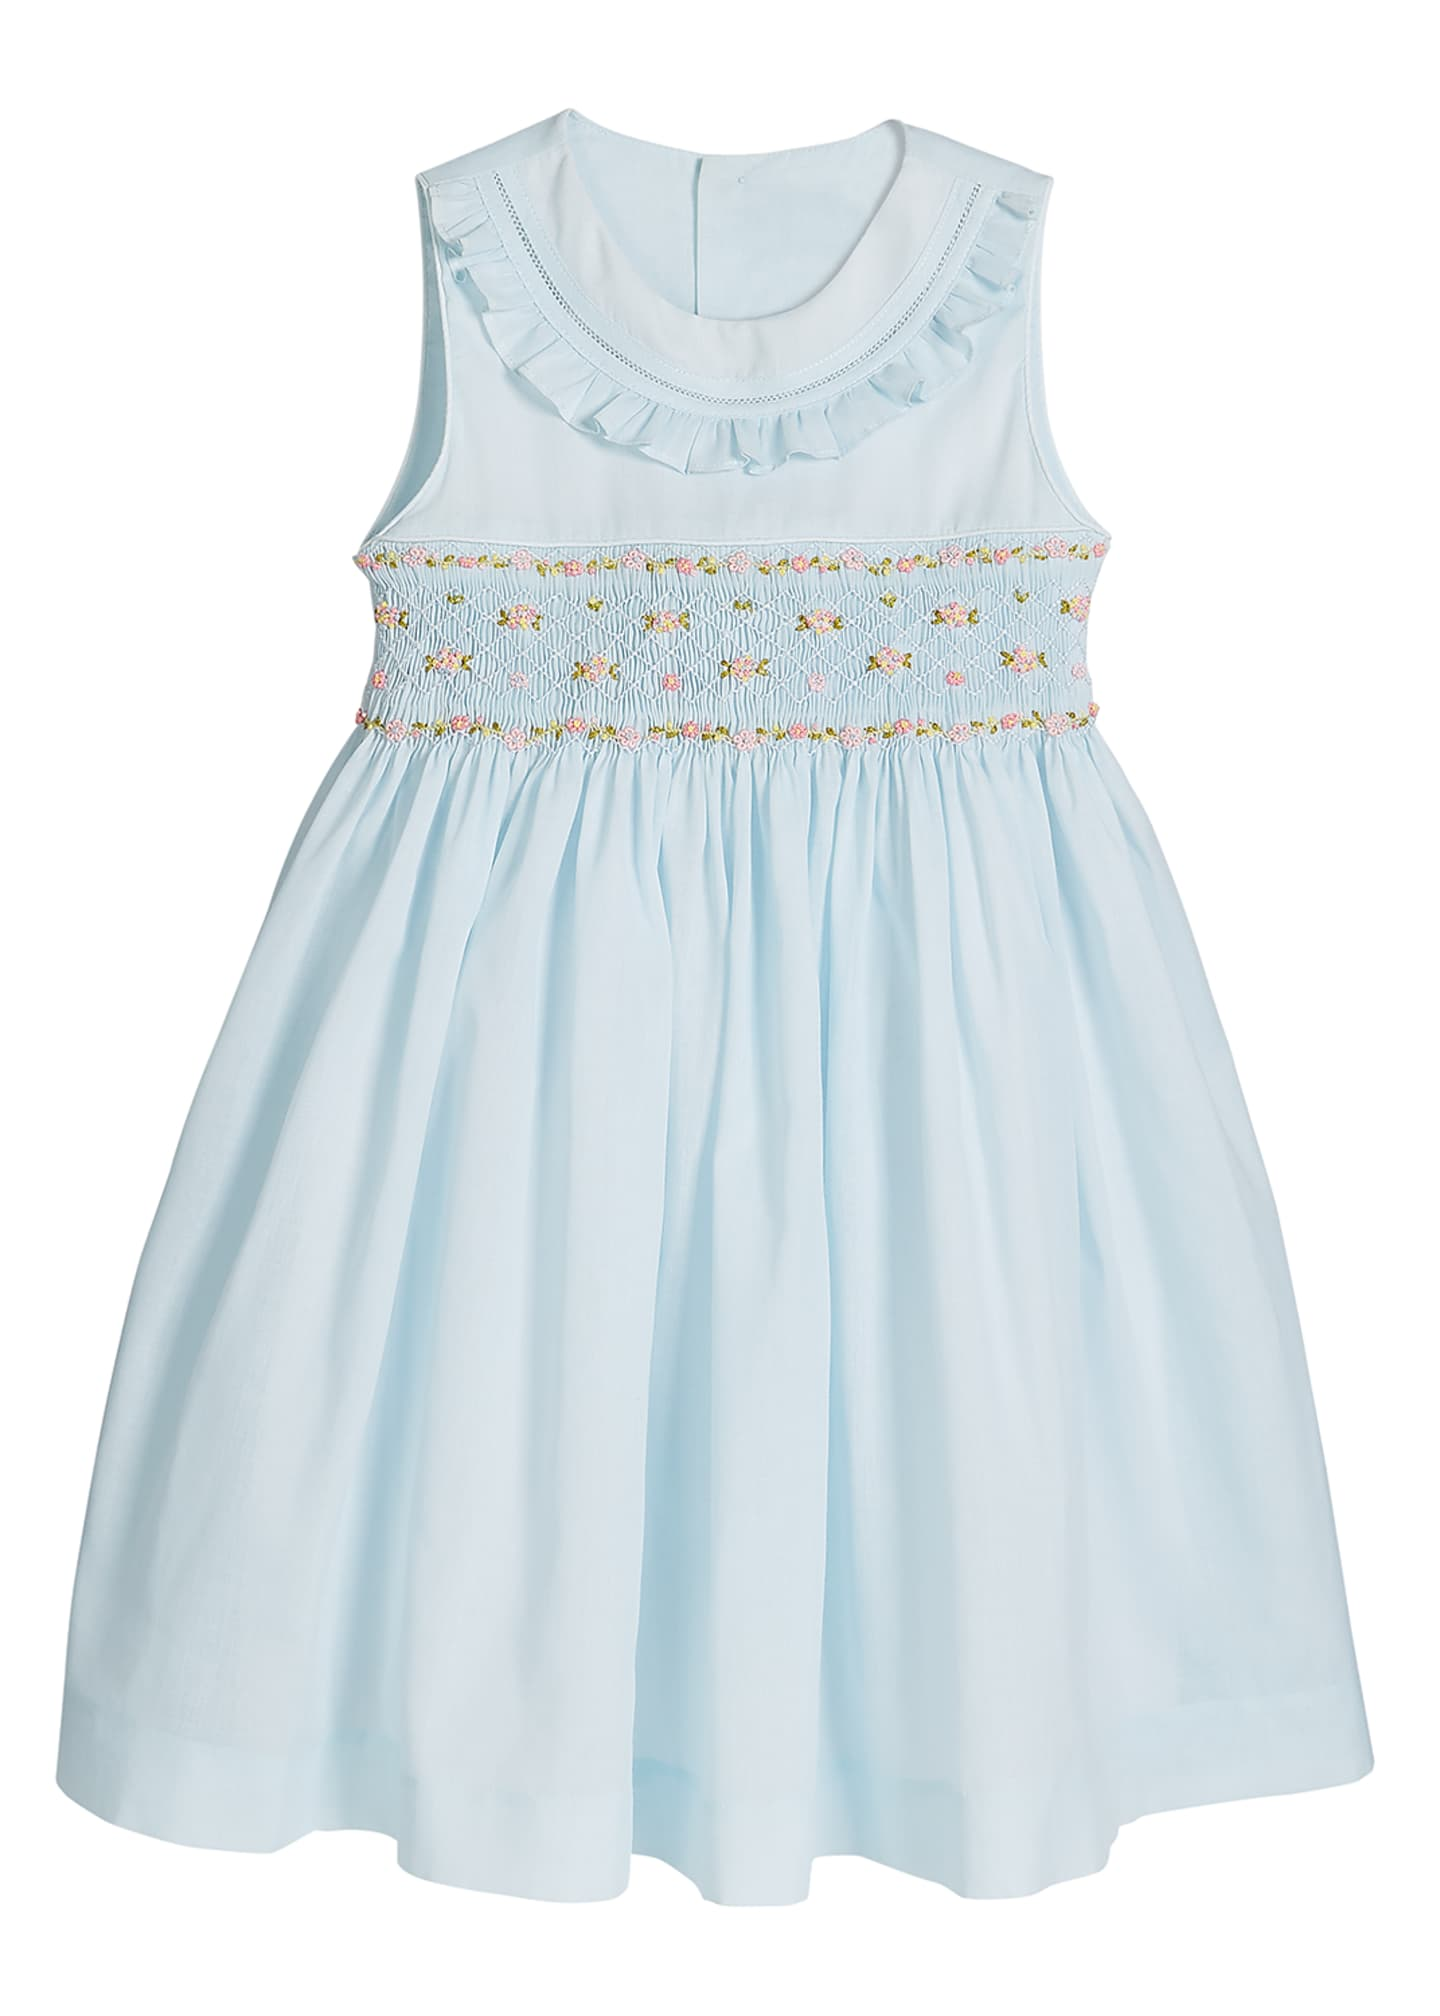 Image 1 of 2: Girl's Blue Smocked Dress, Size 4-6X